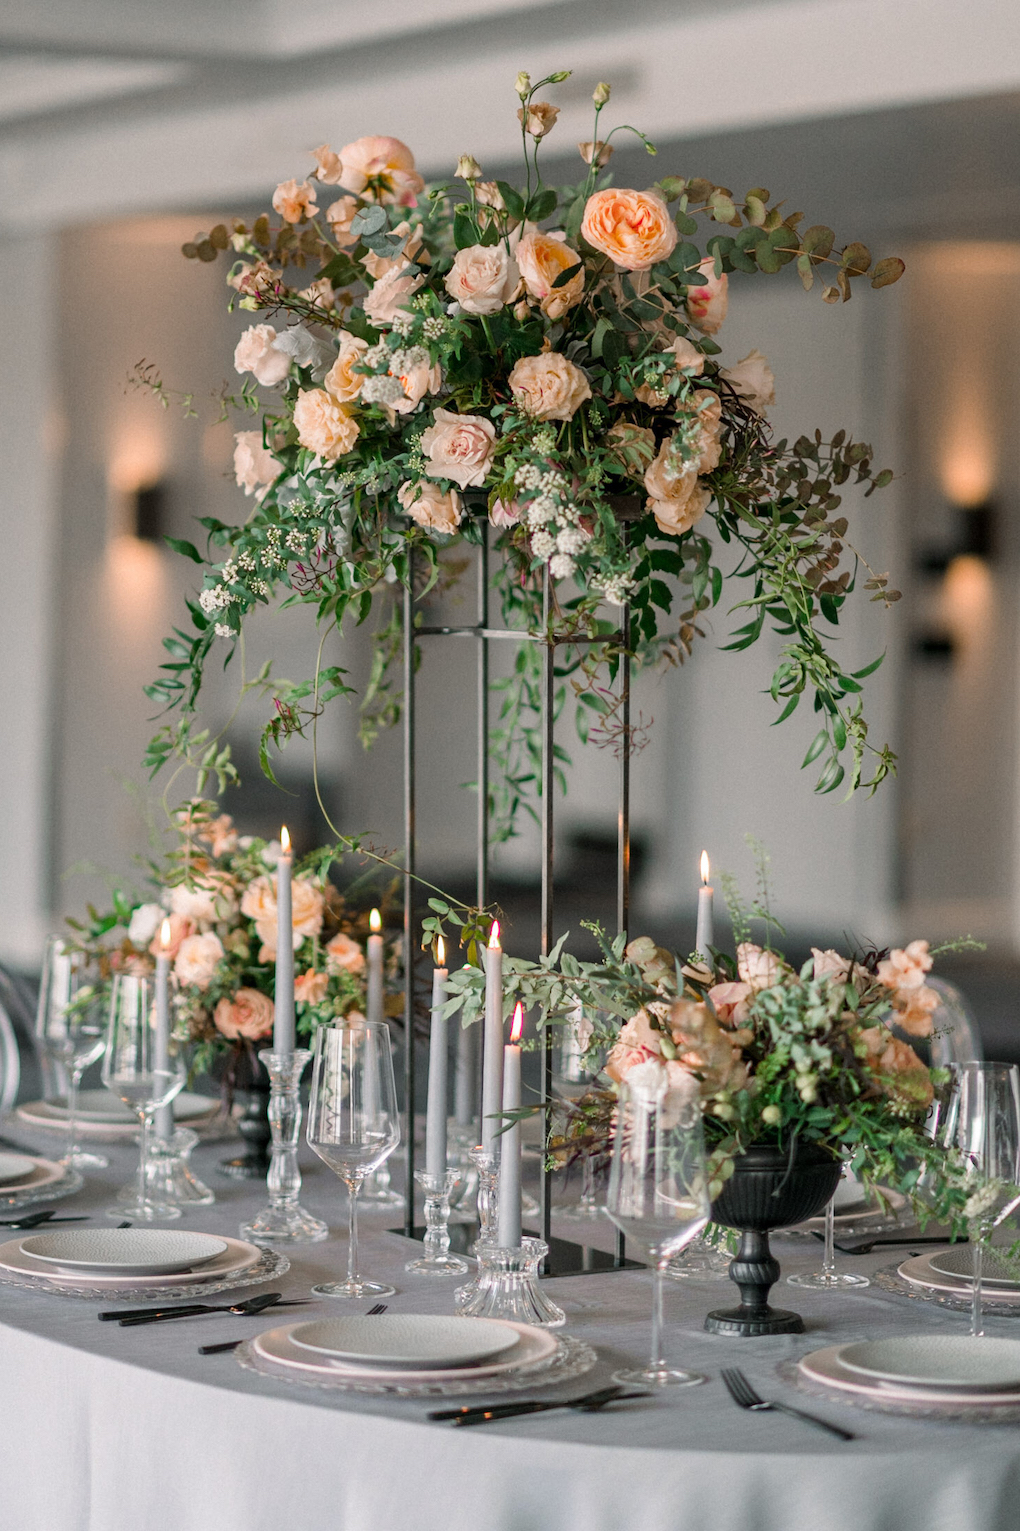 Wedding tablescape ideas in pink and grey: Soft and Subtle Palettes of Spring Blossoms | Editorial Shoot at The Renaissance Pittsburgh by Exhale Events. See more inspiration at exhale-events.com!